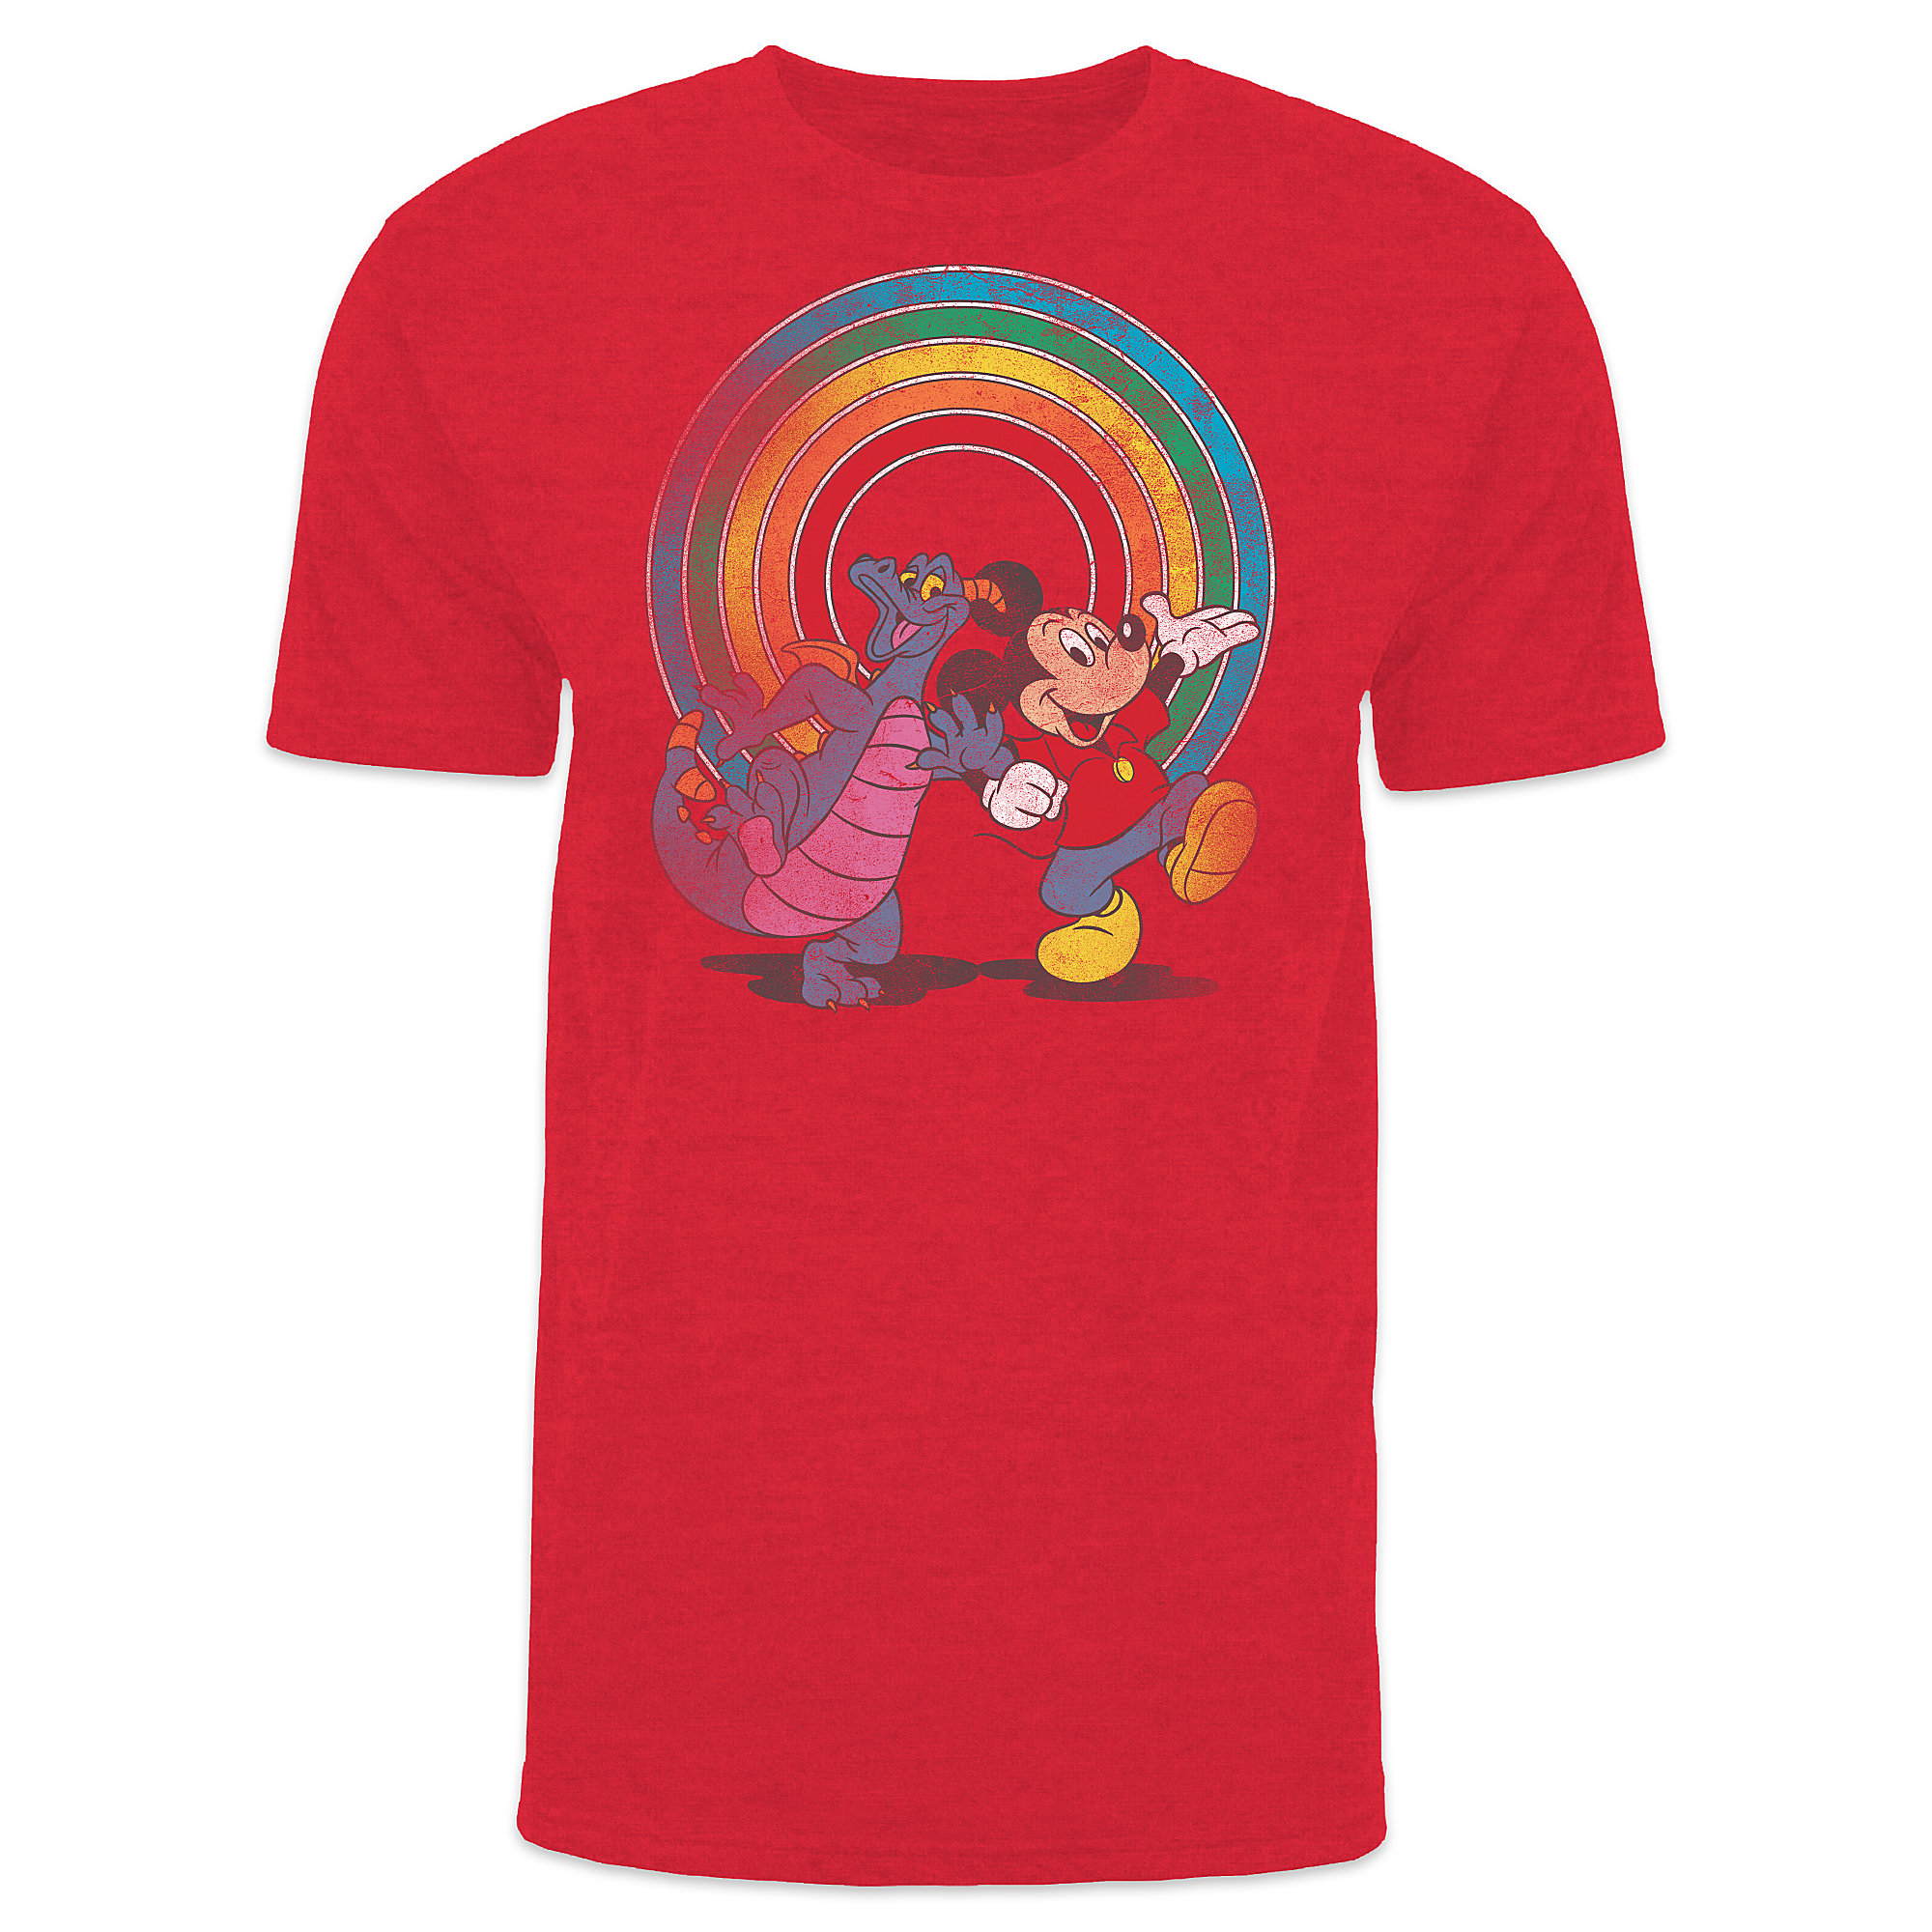 Mickey Mouse and Figment YesterEars T-Shirt for Adults - Epcot - Limited Release